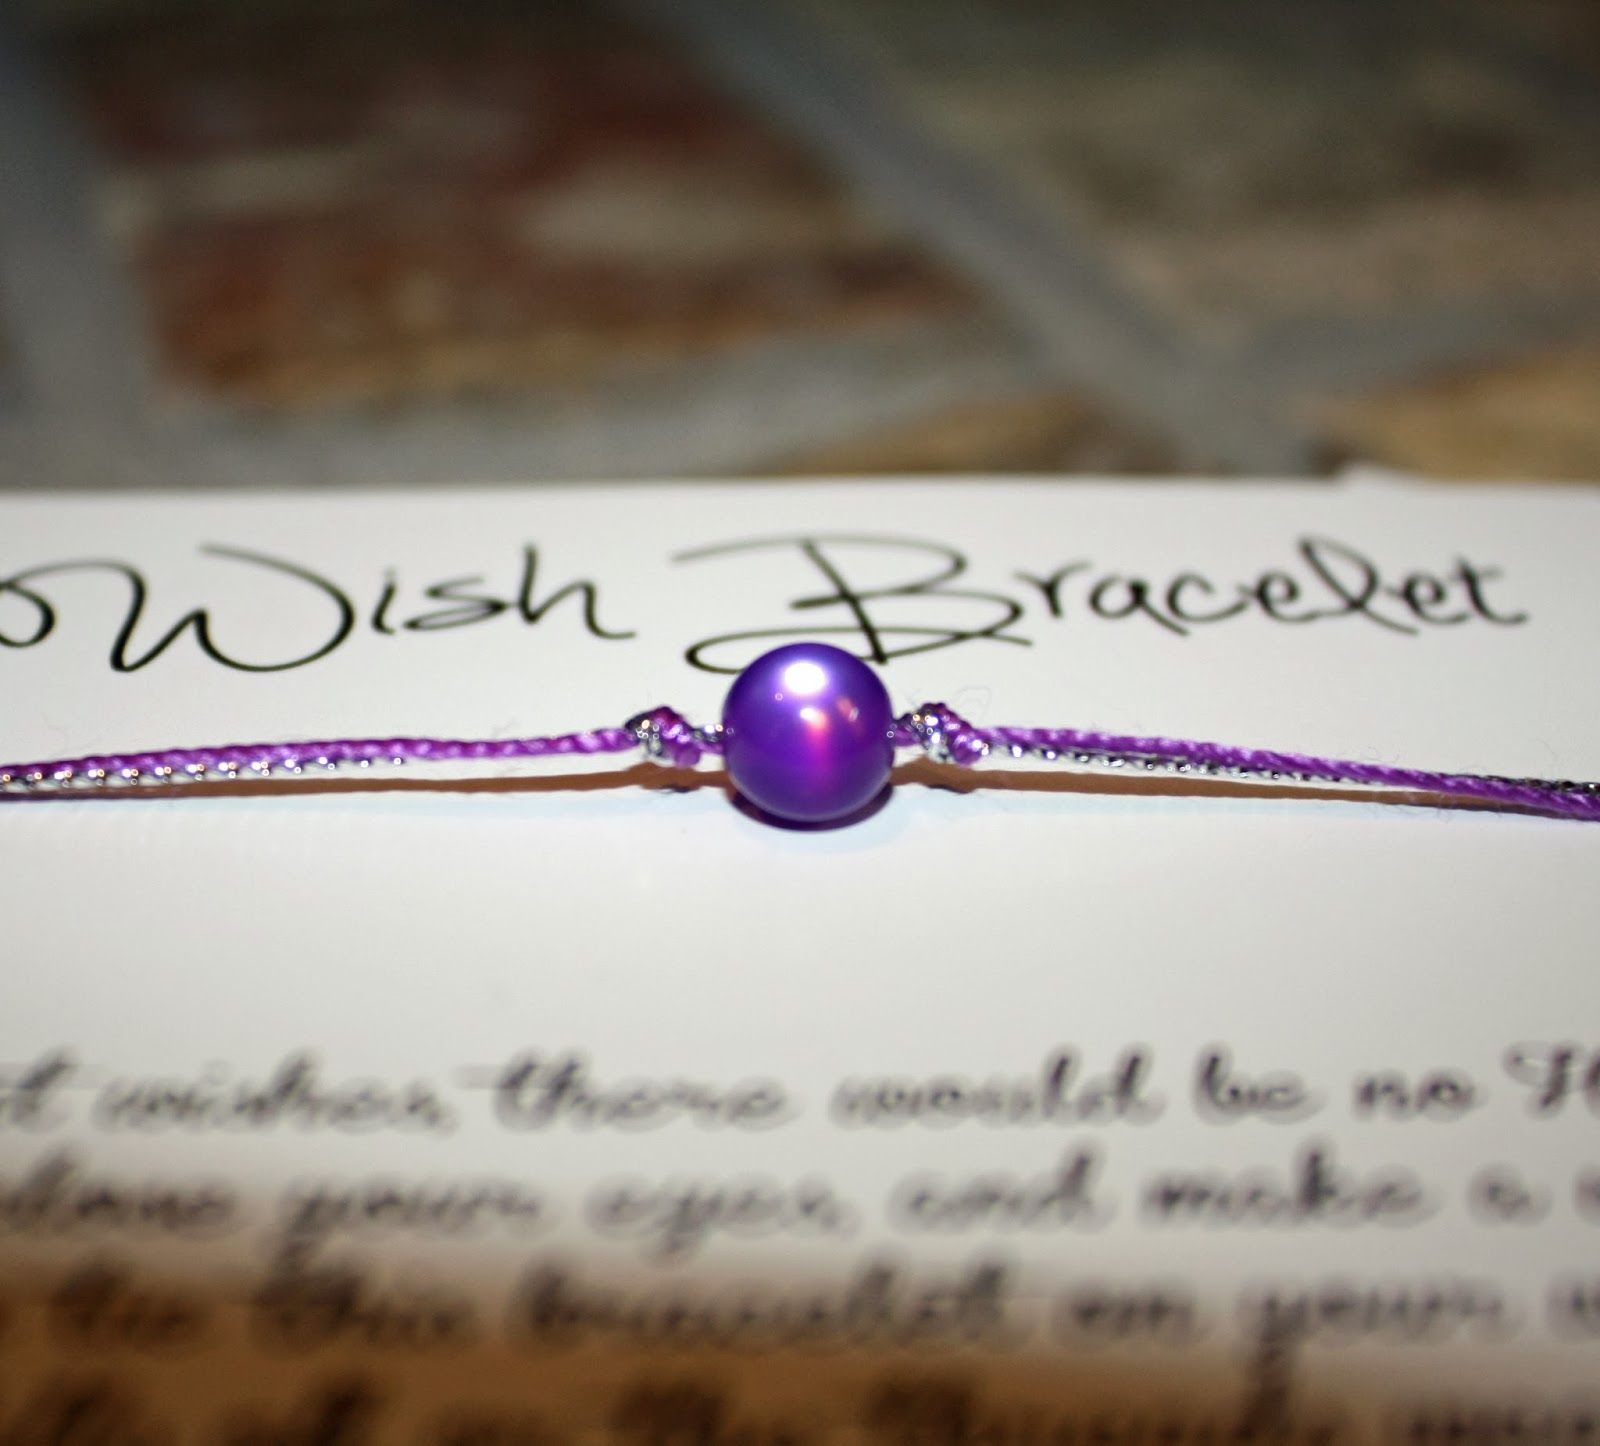 easy relay for life fundraiser - how to make wish bracelets! | relay